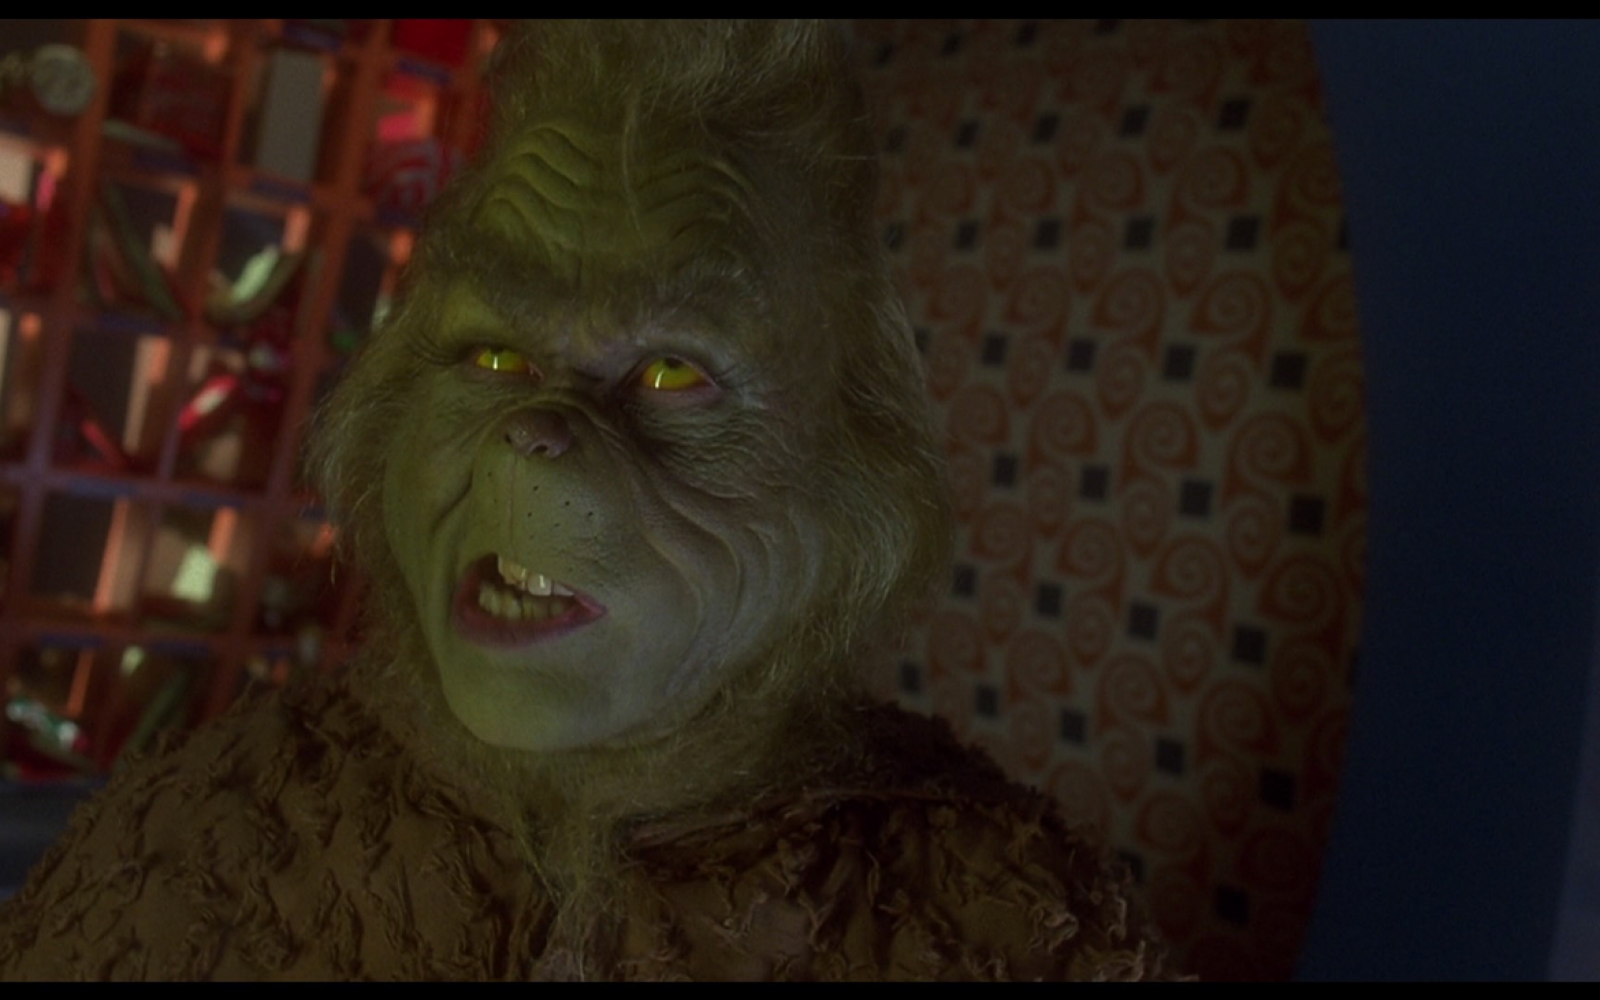 14 Times In Life We Were All The Grinch